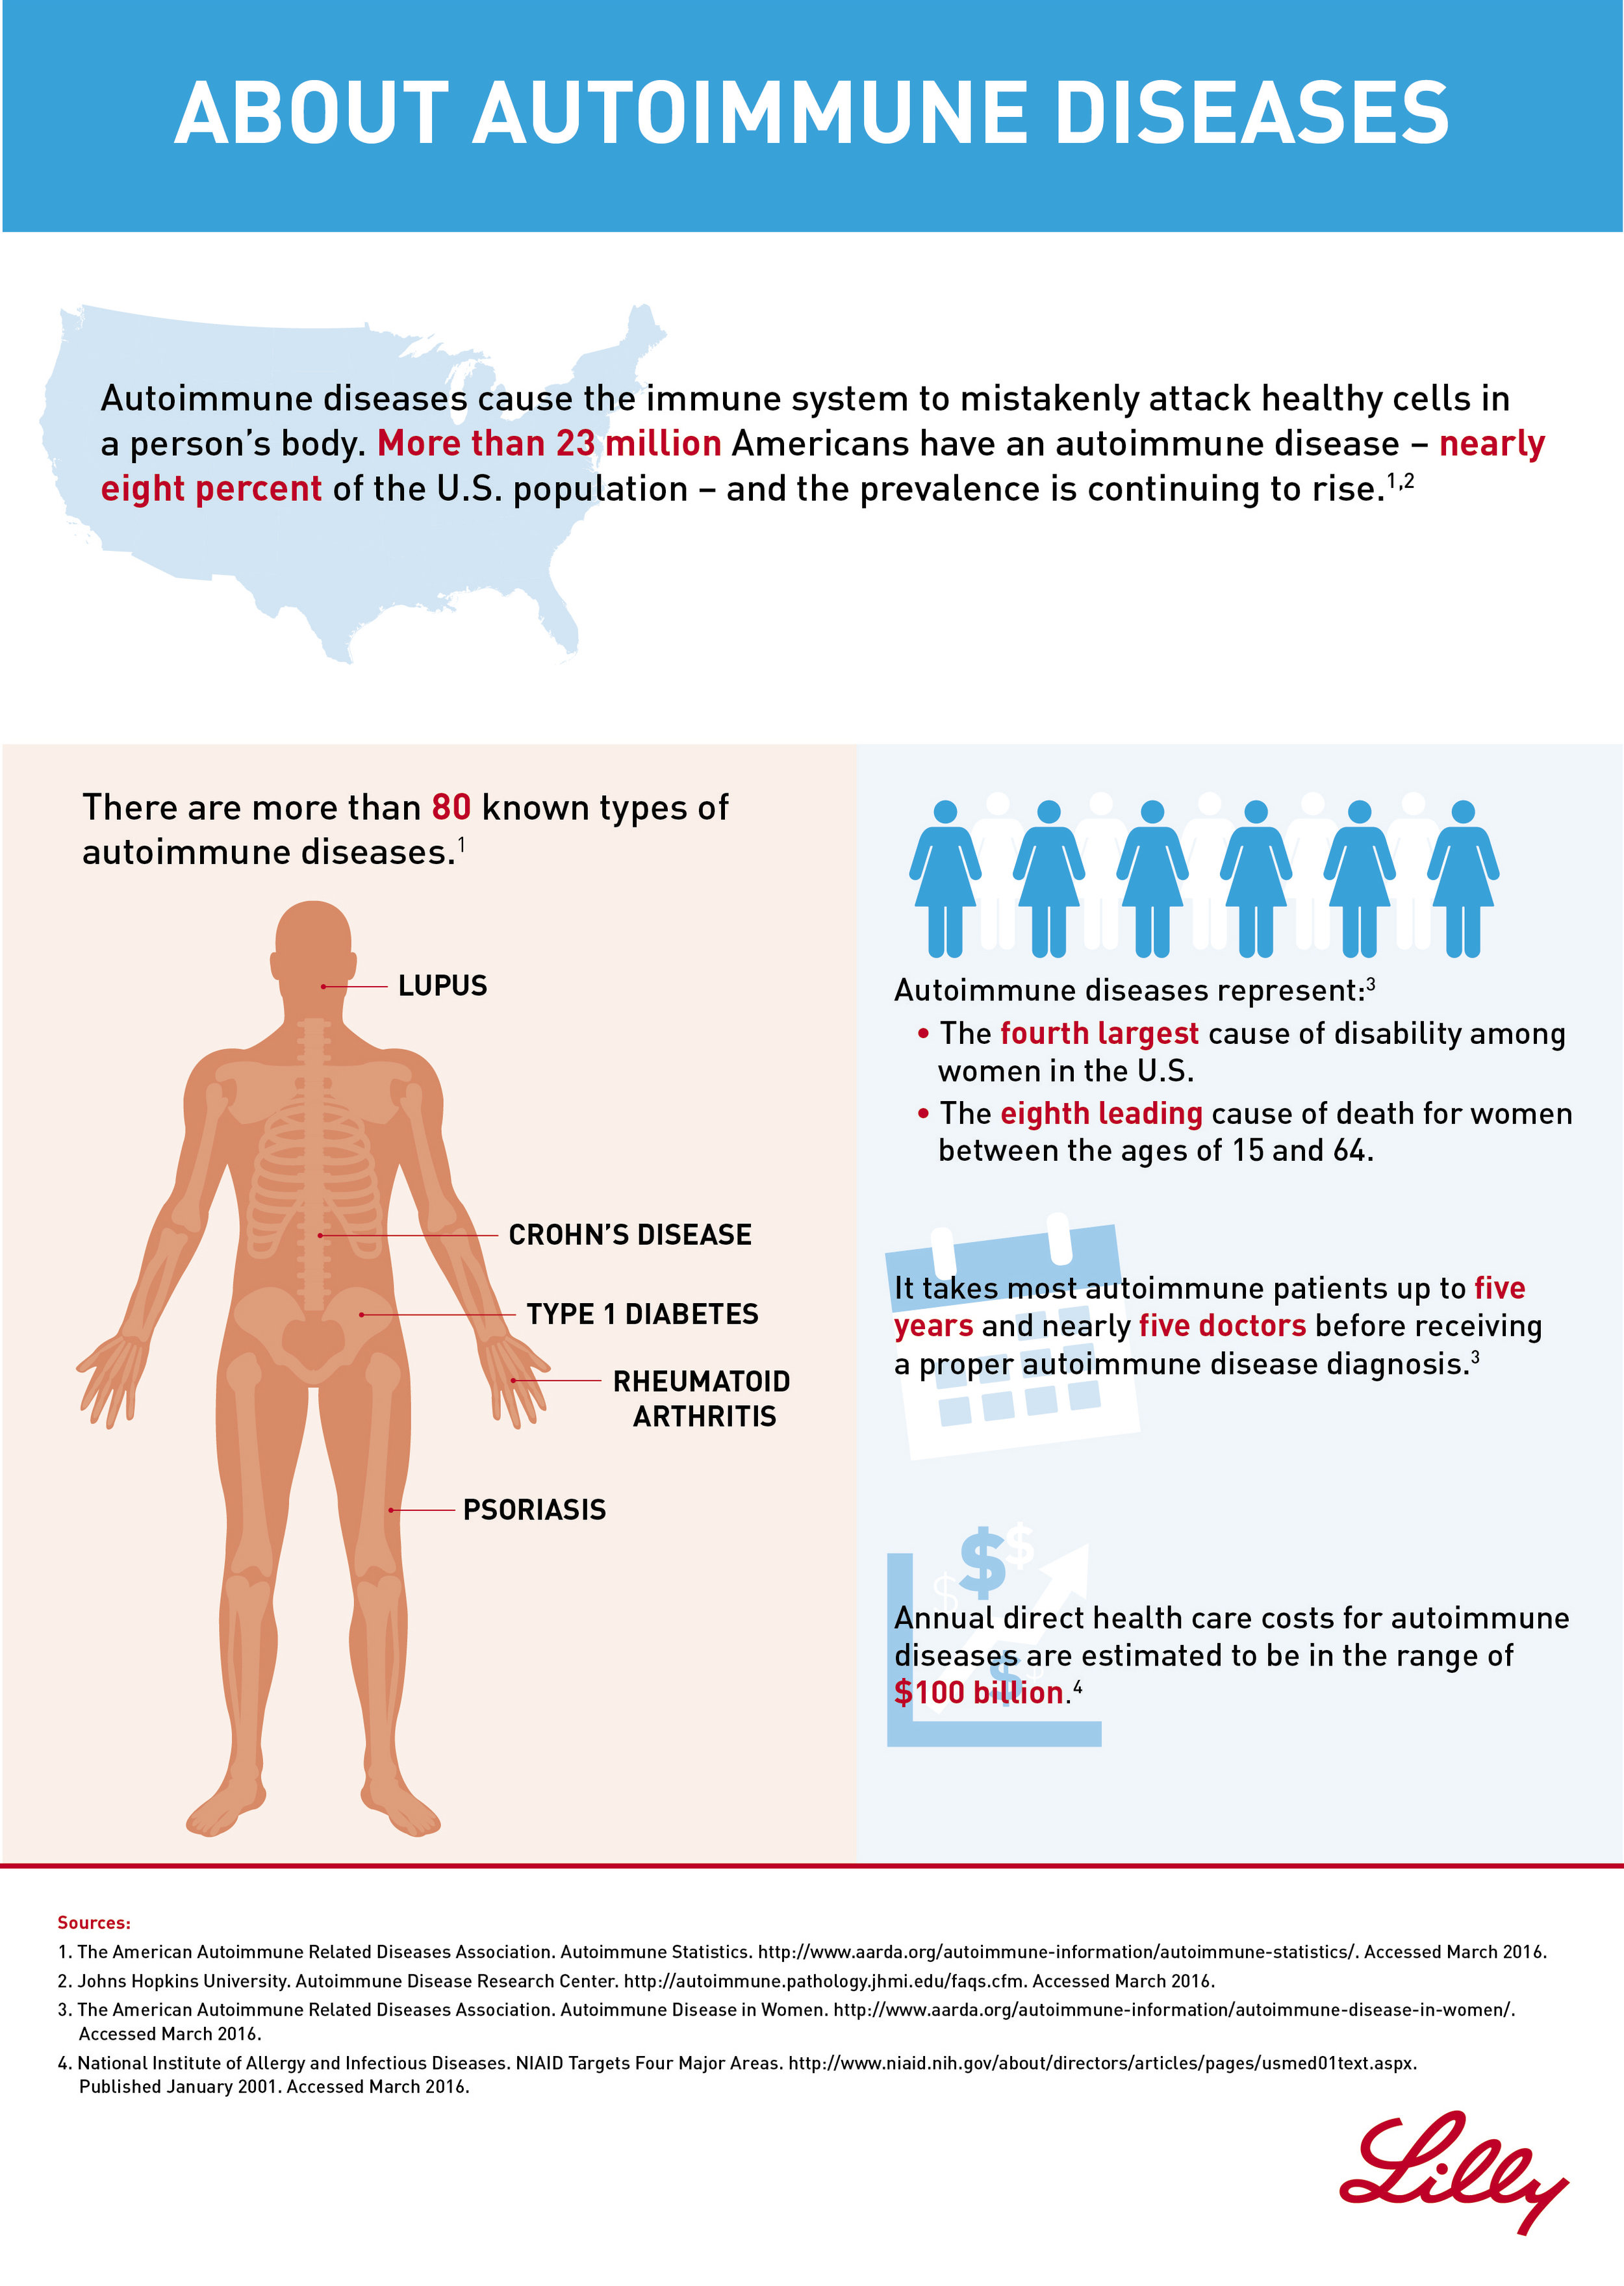 About-Autoimmune-Diseases-Infographic_Updated.jpg